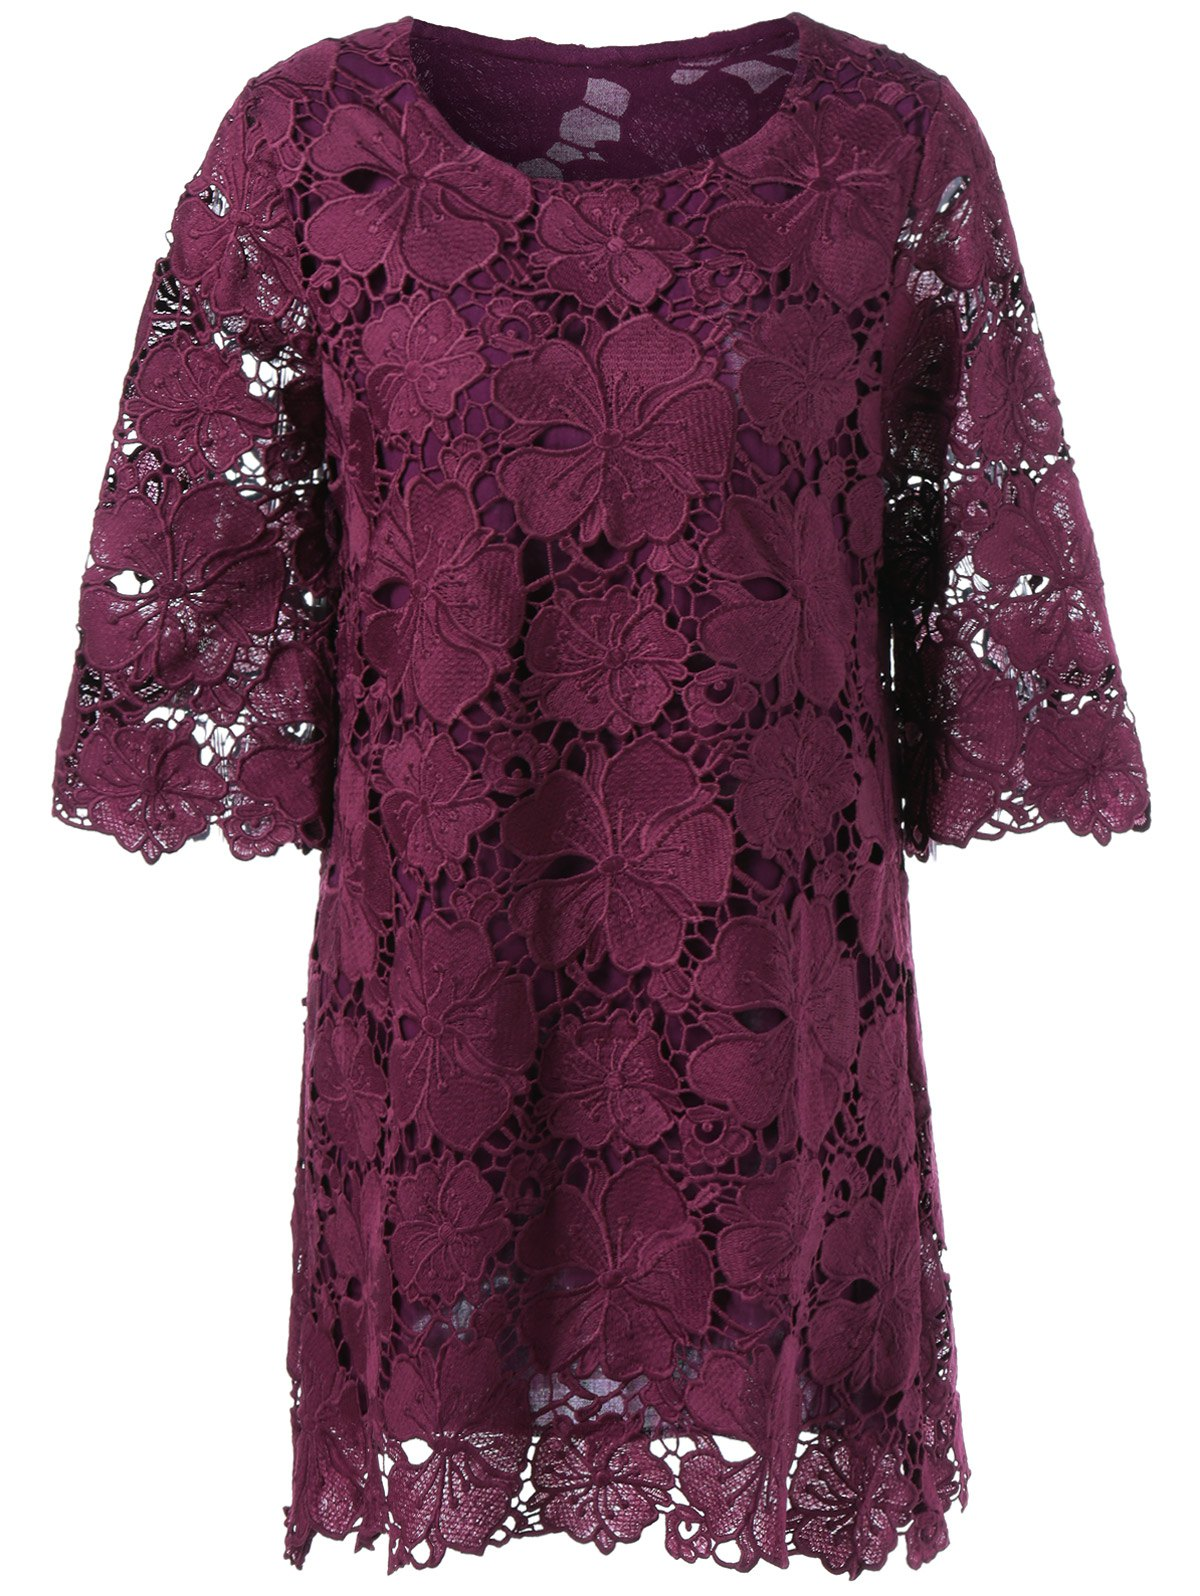 Sheer Lace Floral Overlay Shift Dress floral lace overlay top